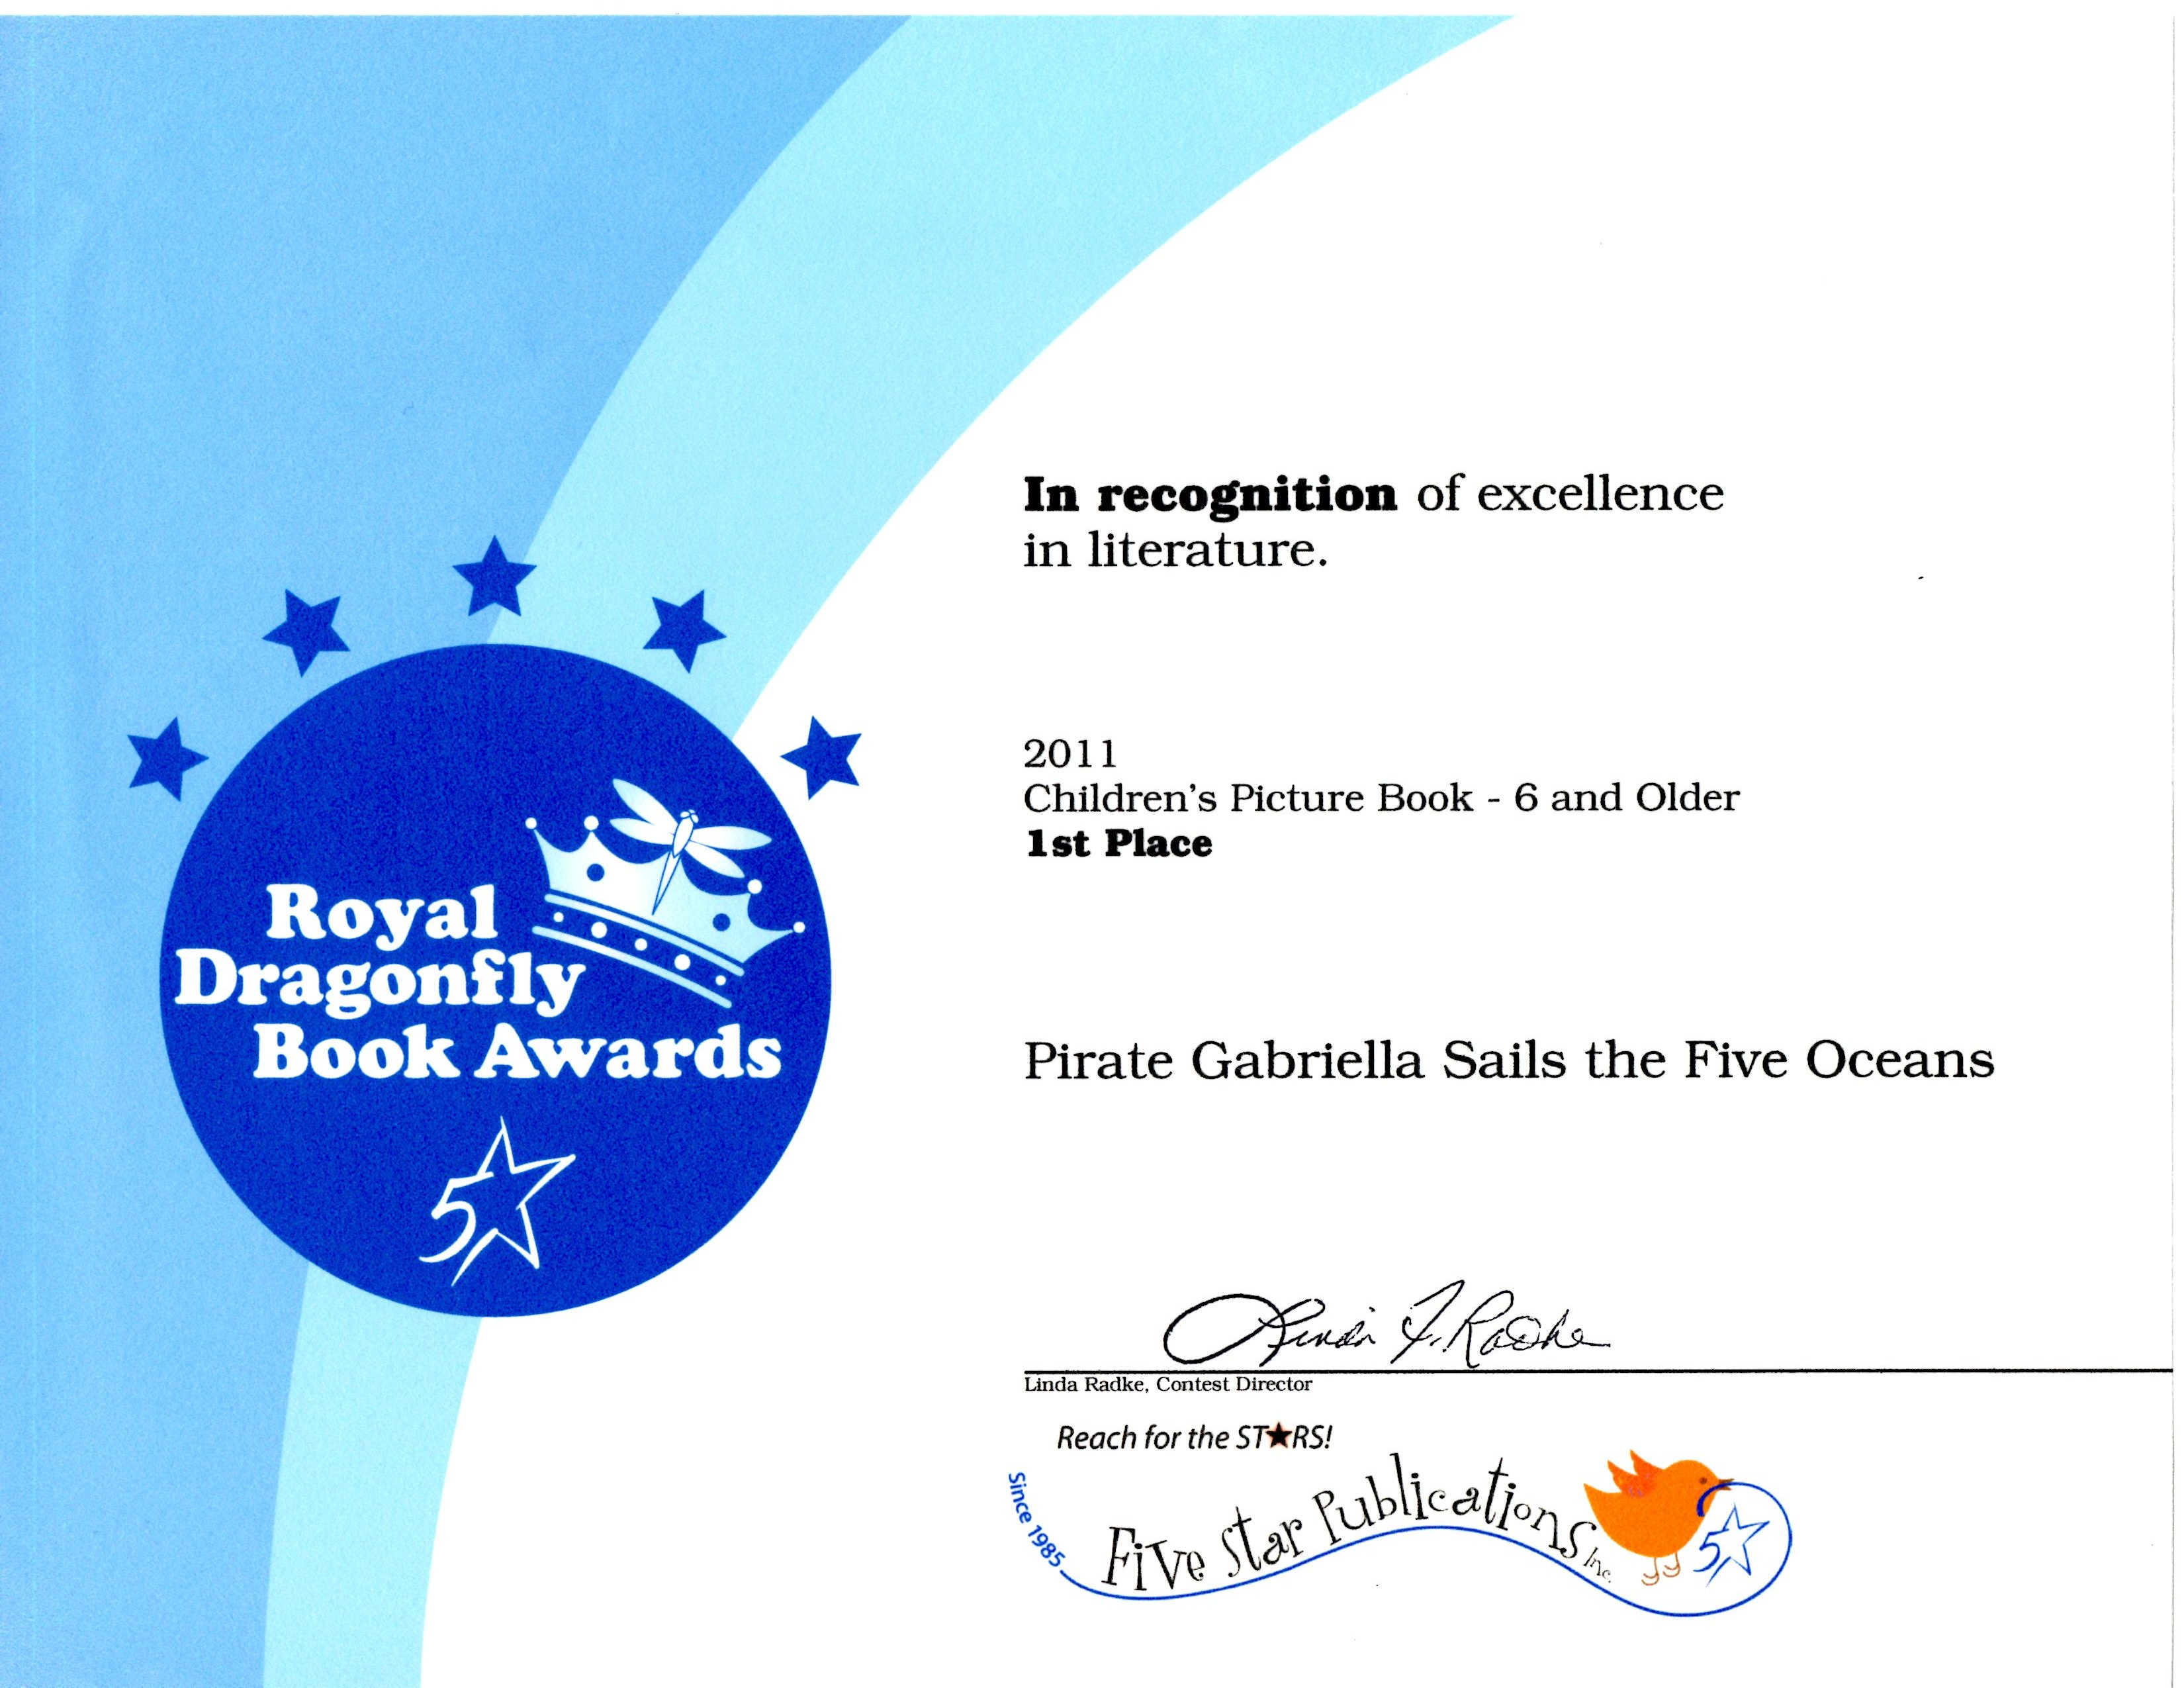 Royal Dragonfly Book Awards